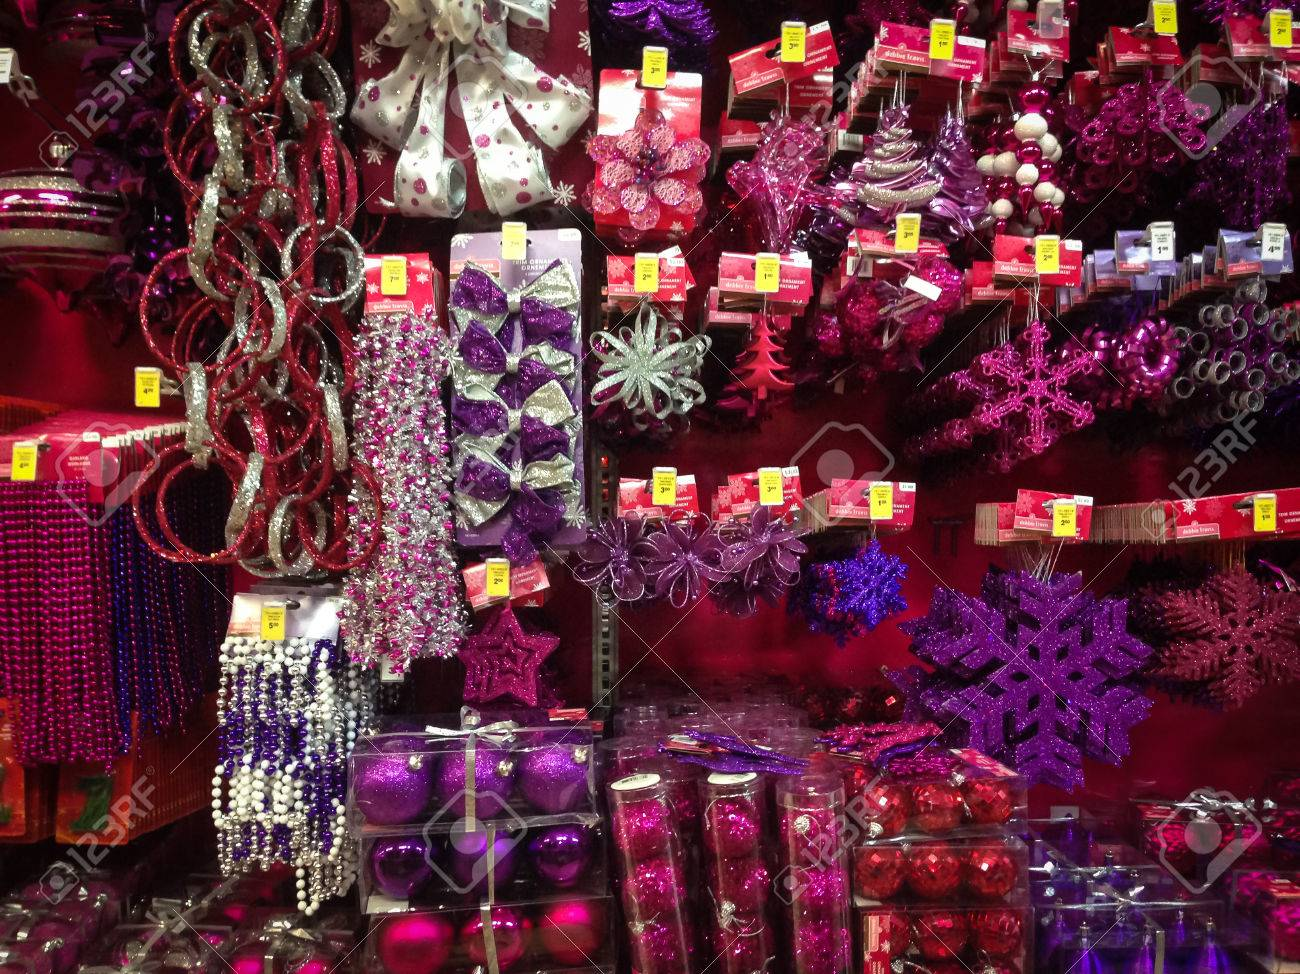 Christmas In Toronto Canada.Toronto November 15 Christmas Ornaments Go For Sale At The